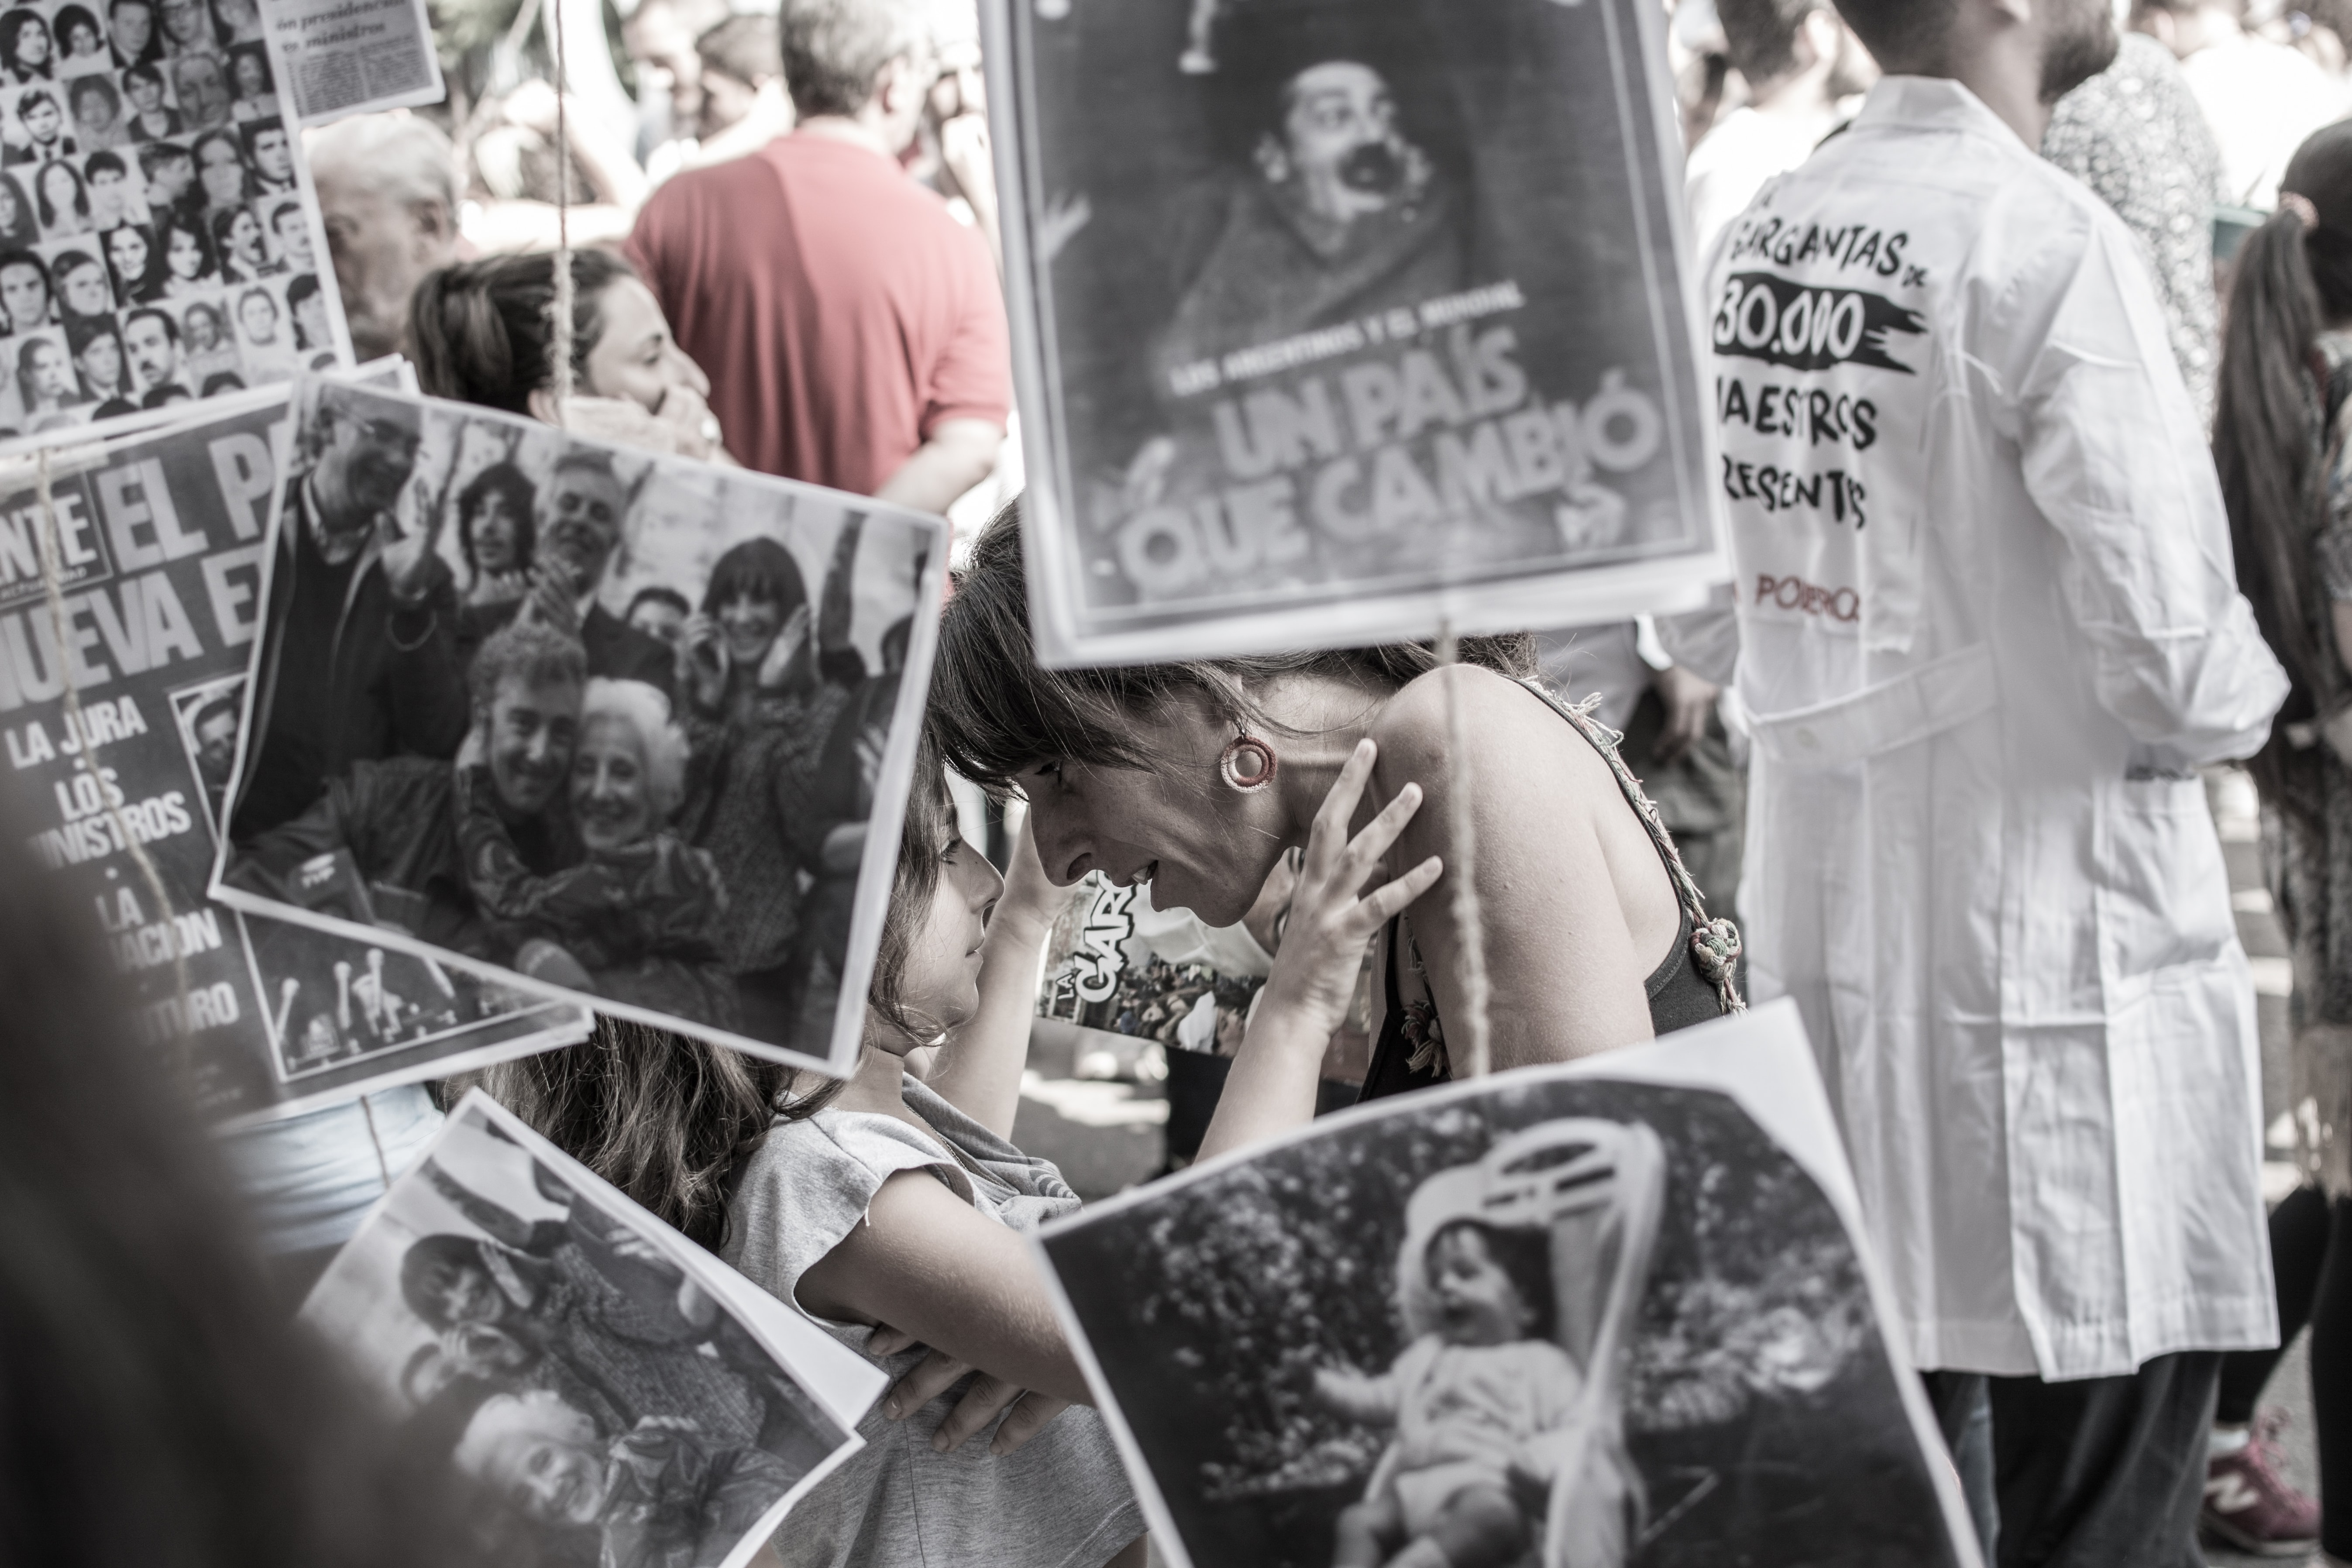 A mother speaks to her daughter in a crowd full of protest signs in Buenos Aires